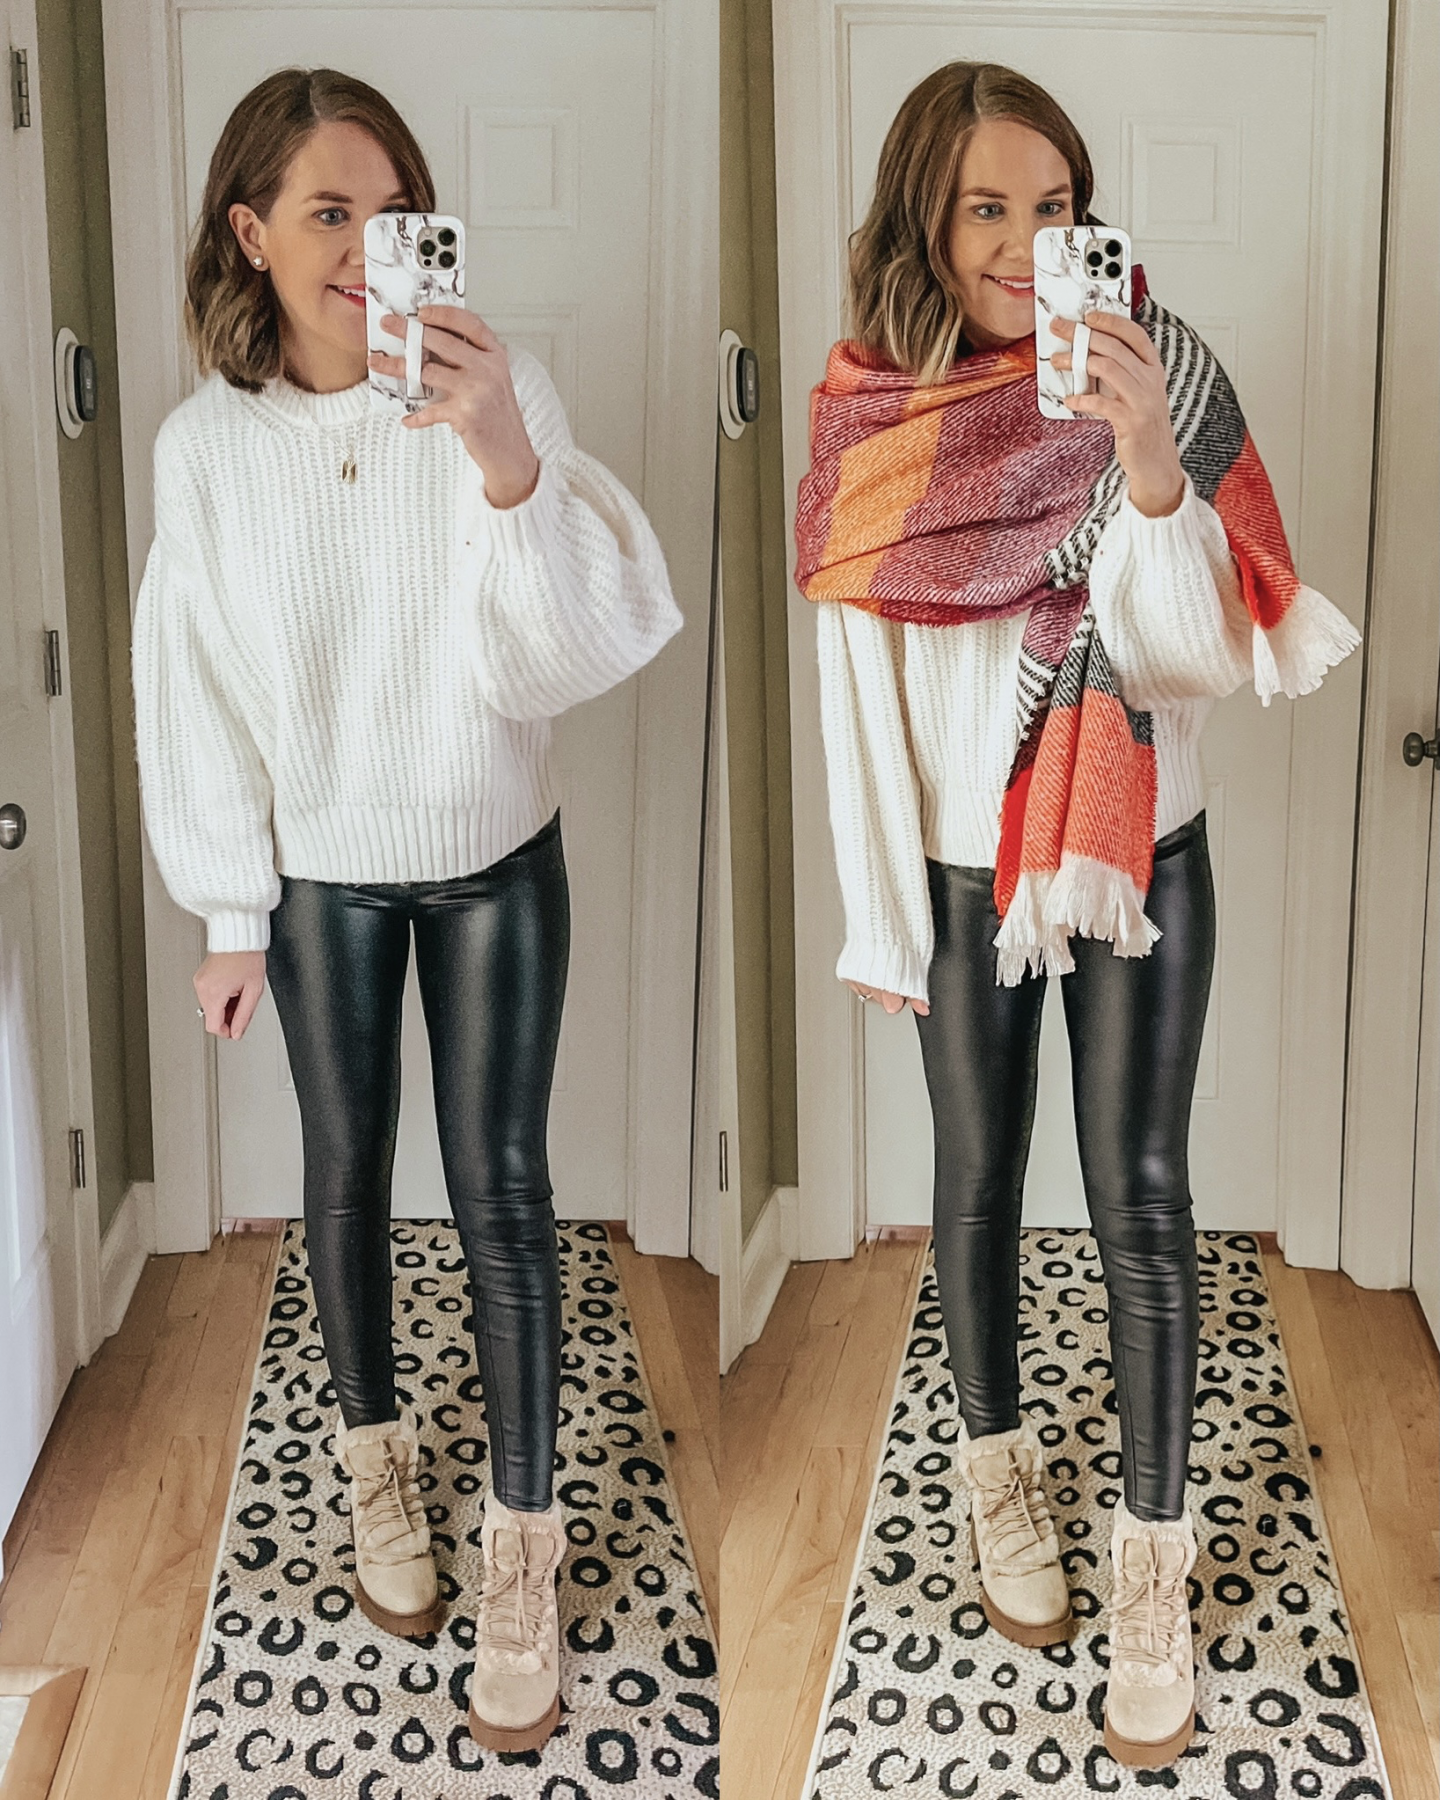 2020 TARGET WINTER FASHION PREVIEW, balloon sleeve sweater, blanket scarf, faux leather leggings